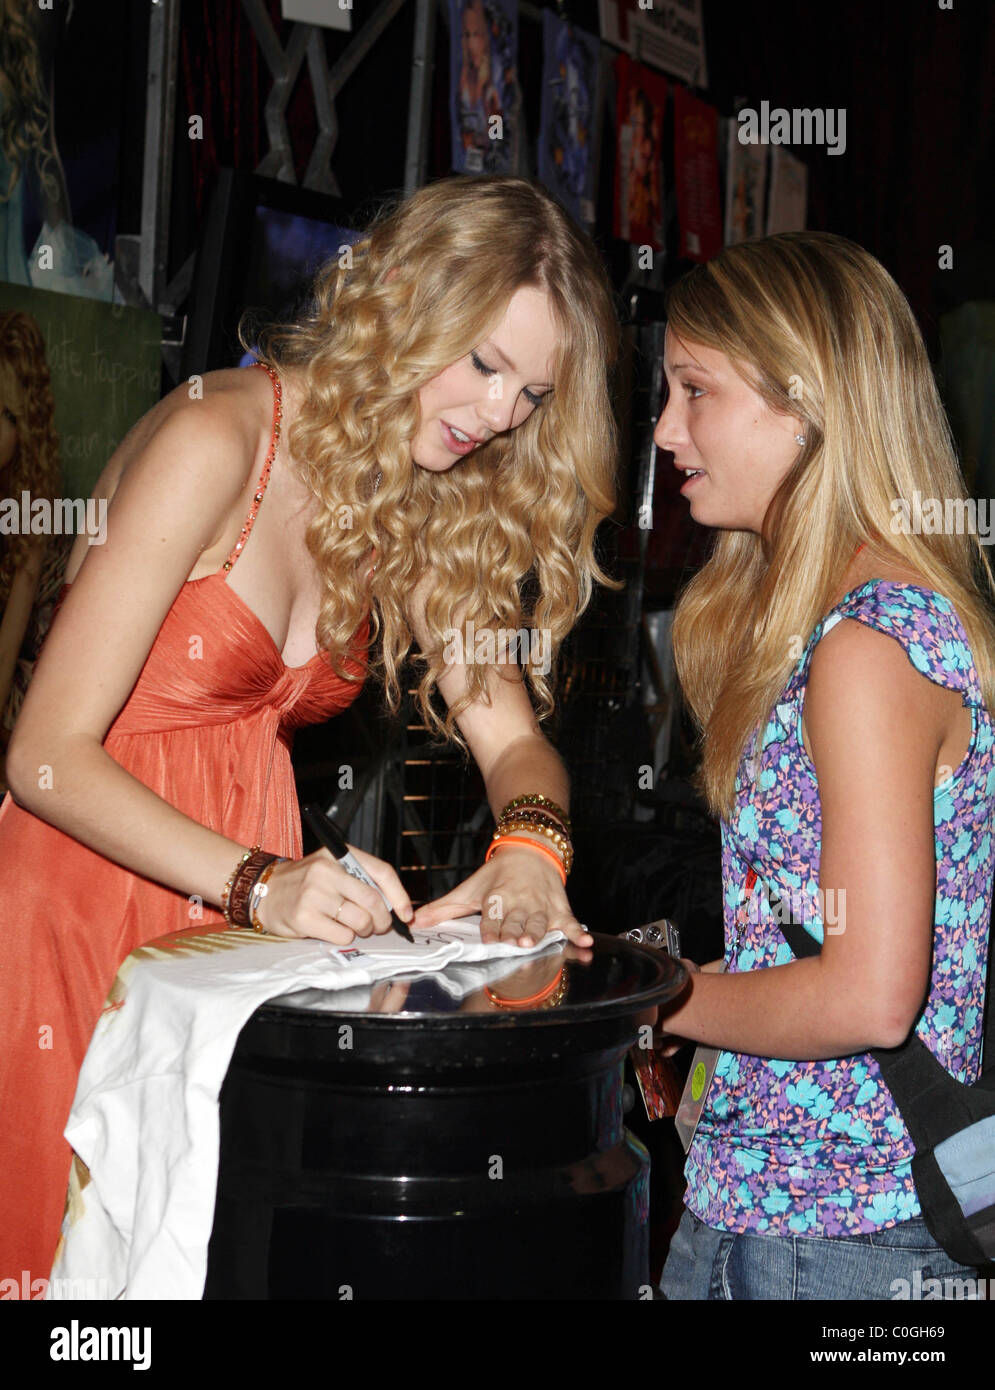 Taylor Swift 2008 Cma Music Festival Day 3 Fan Meet And Greet At